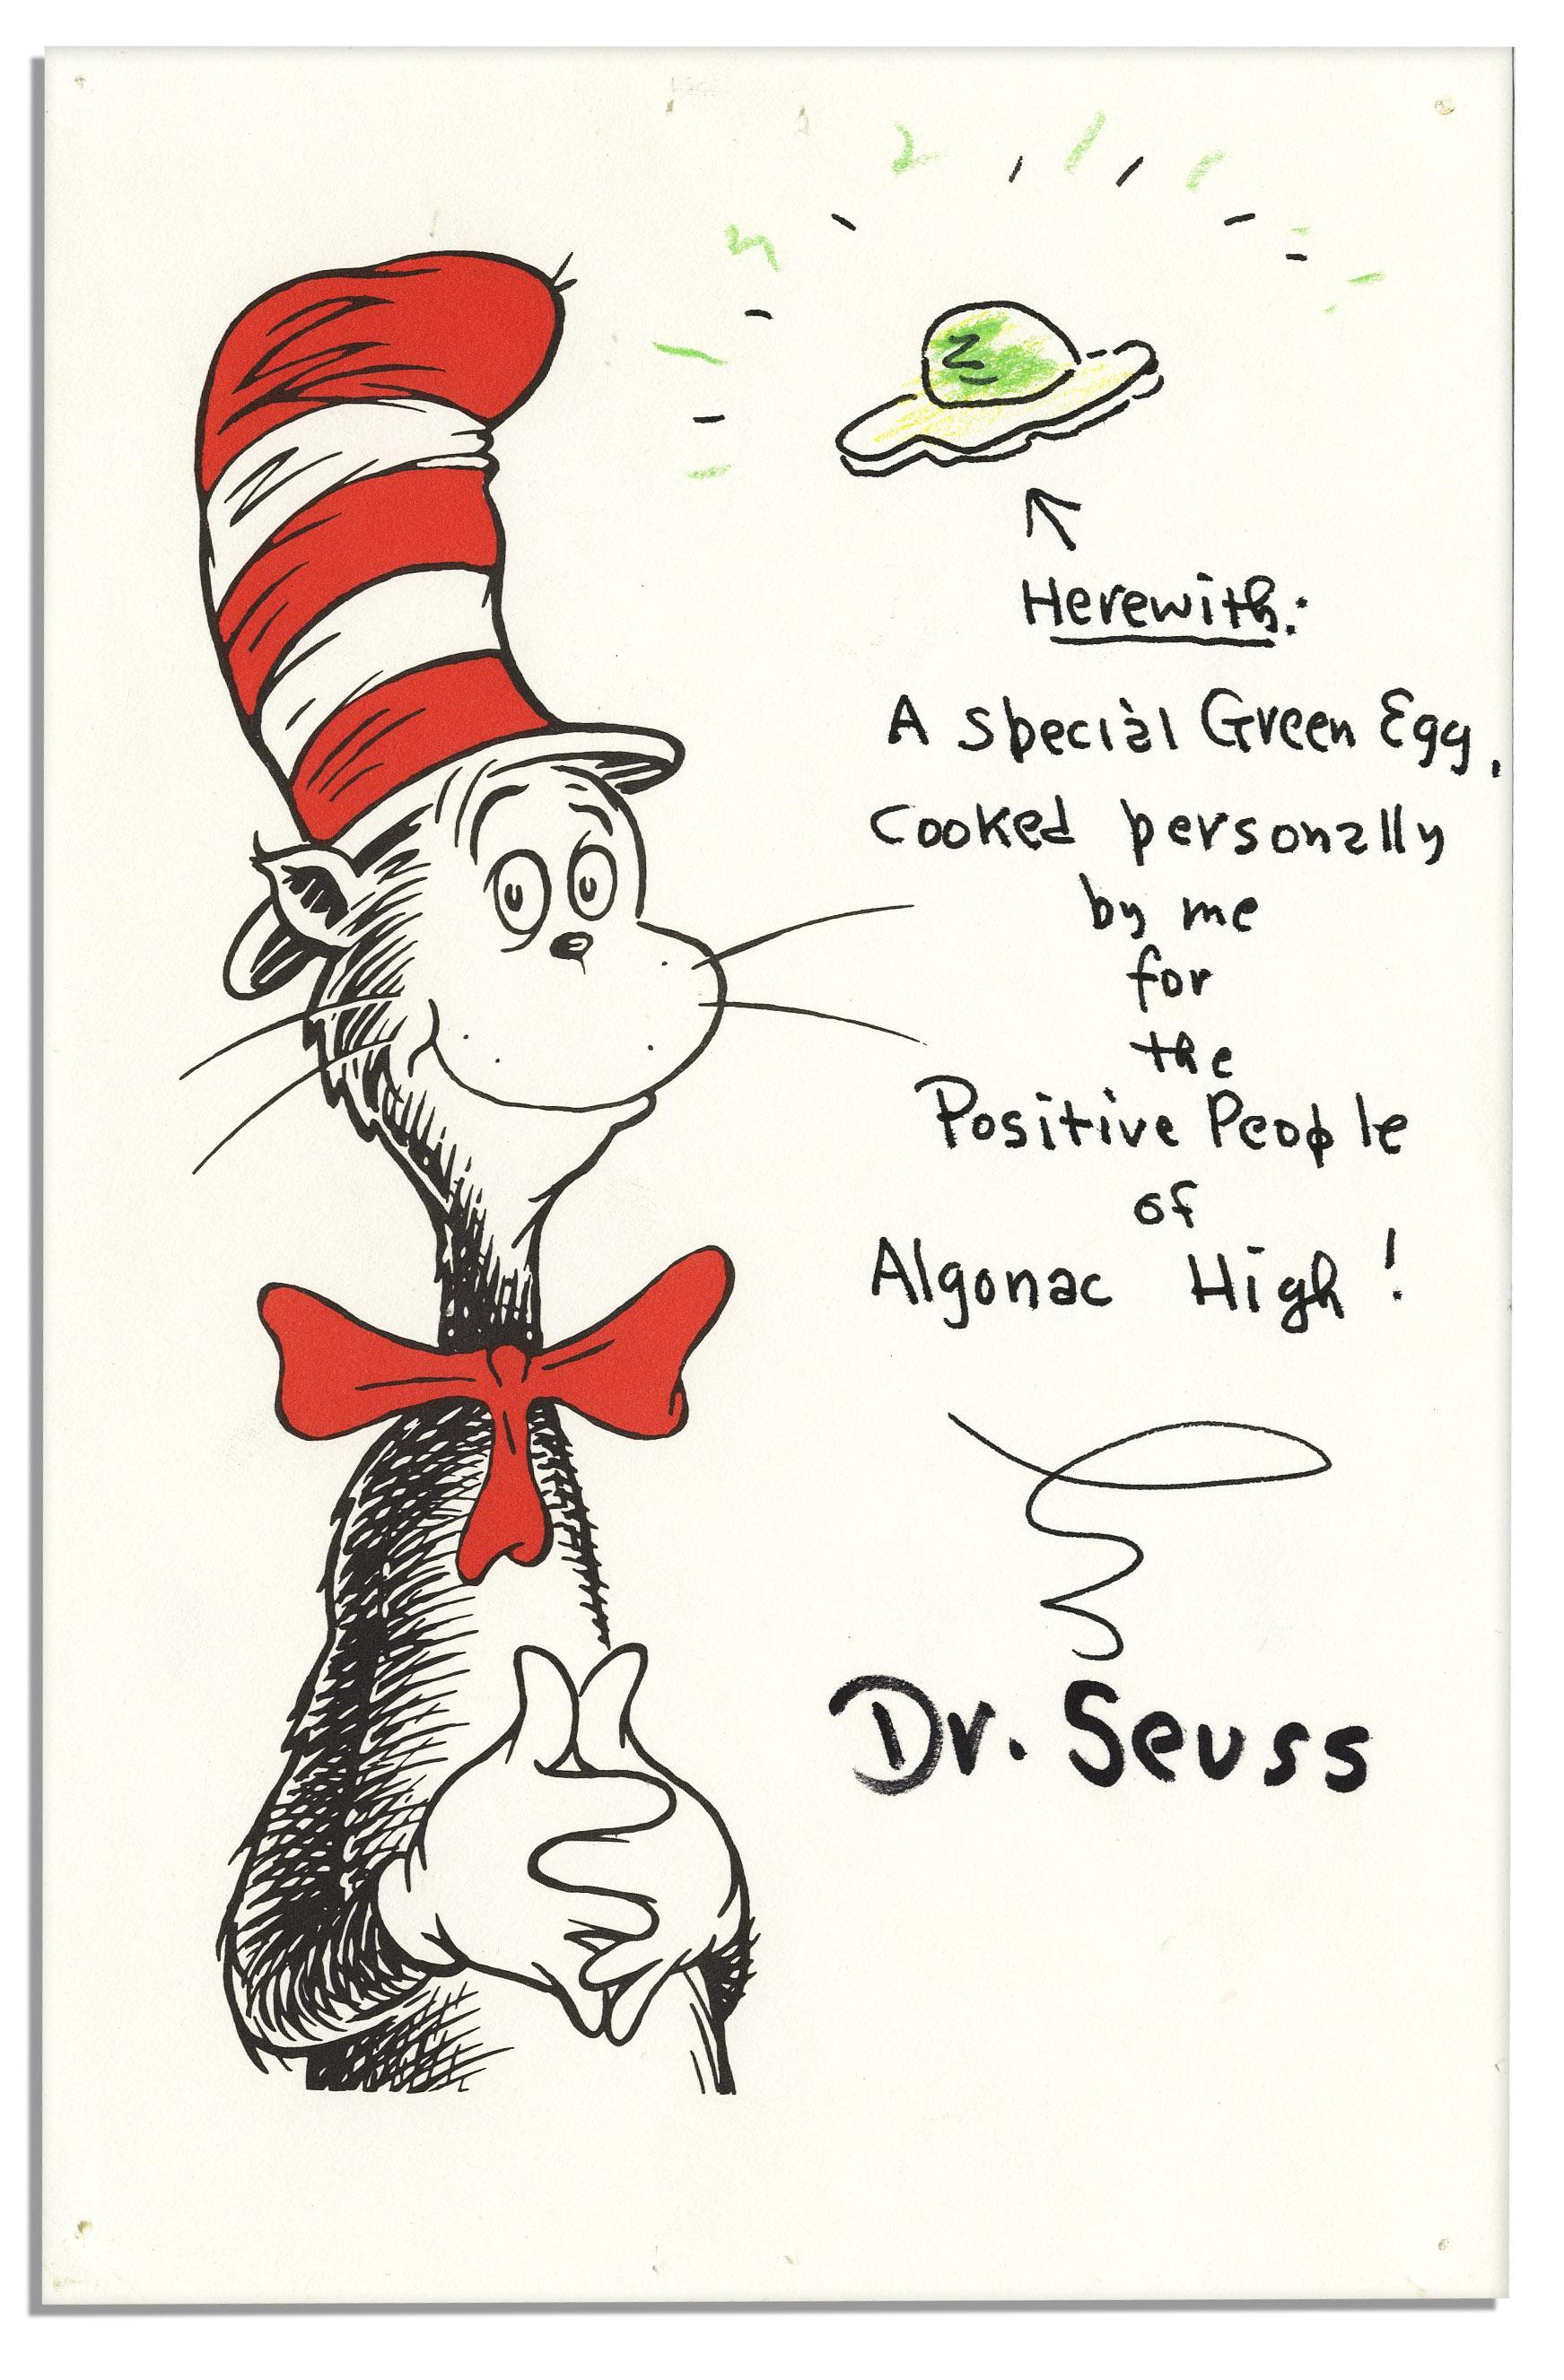 Dr. Seuss Autograph Dr. Seuss Original Art Signed -- Depicting His Famous Green Egg From ''Green Eggs and Ham''